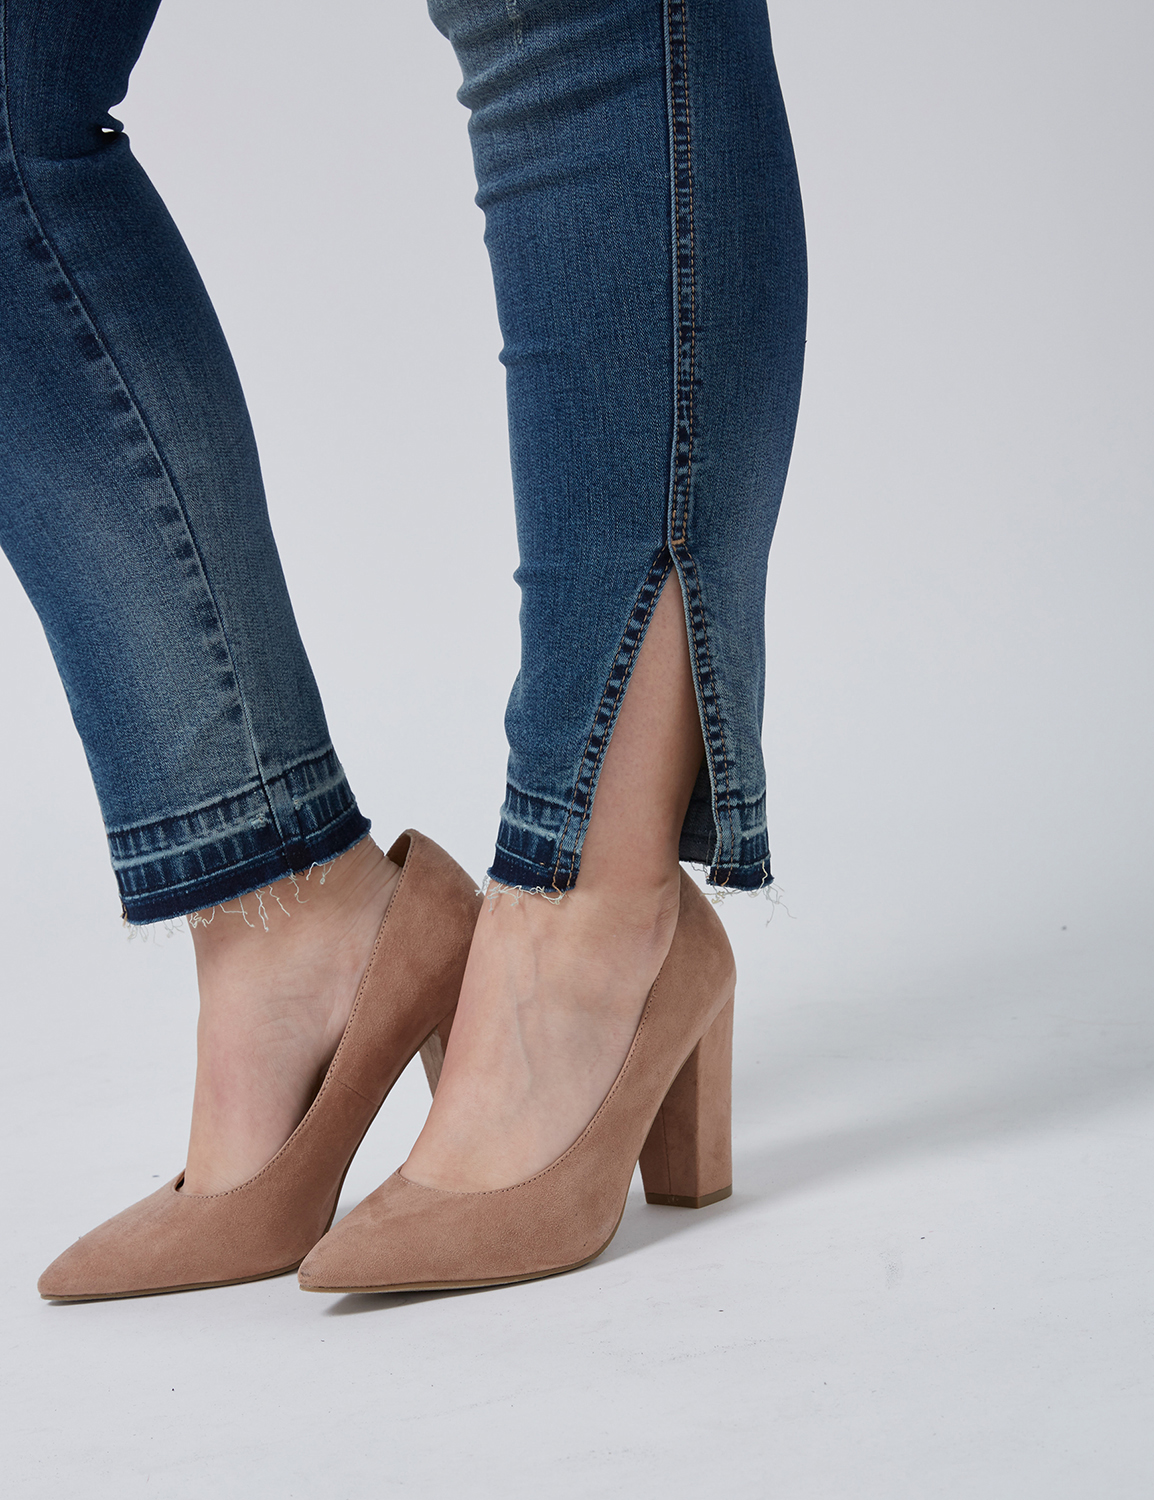 ankle shot of split cuff jeans with unfinished hem